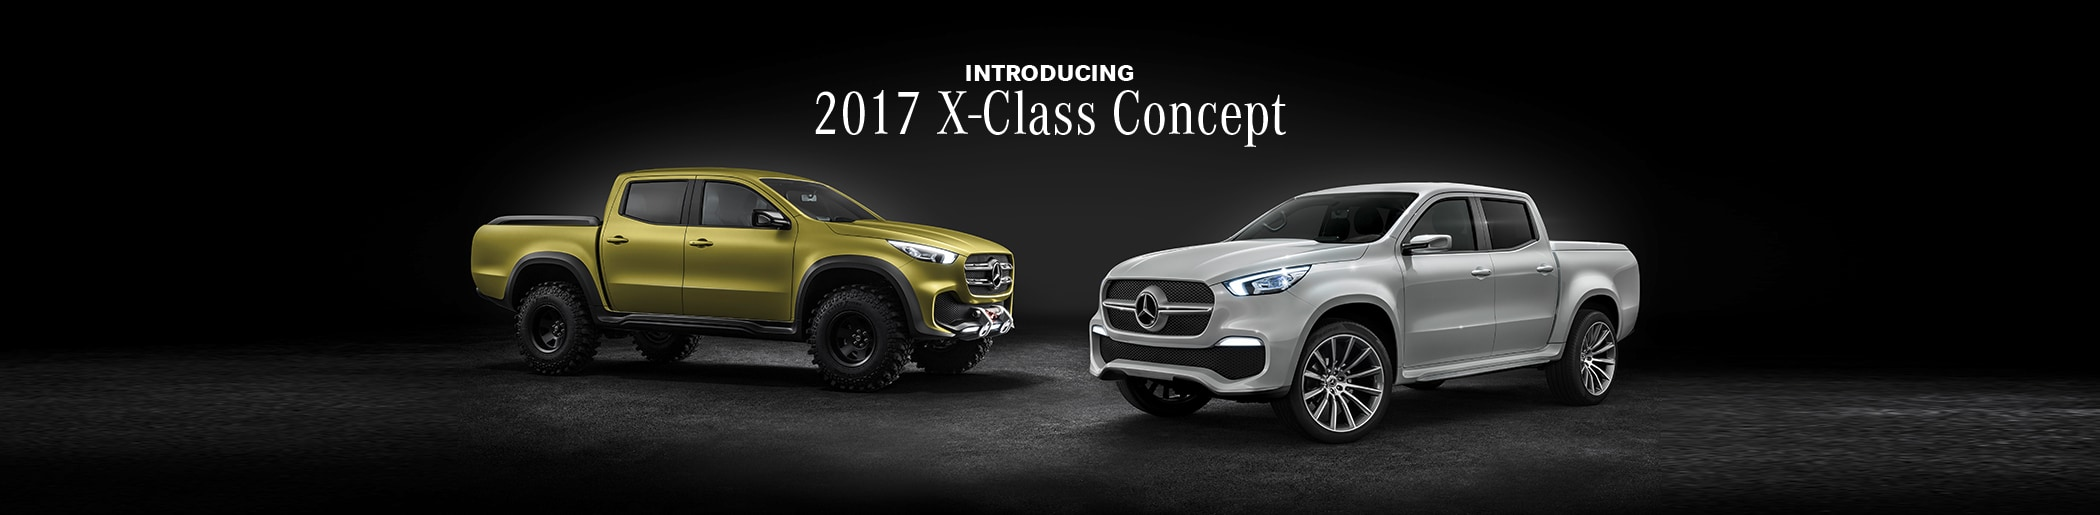 2017 mercedes benz x class mercedes truck concept for The new mercedes benz truck